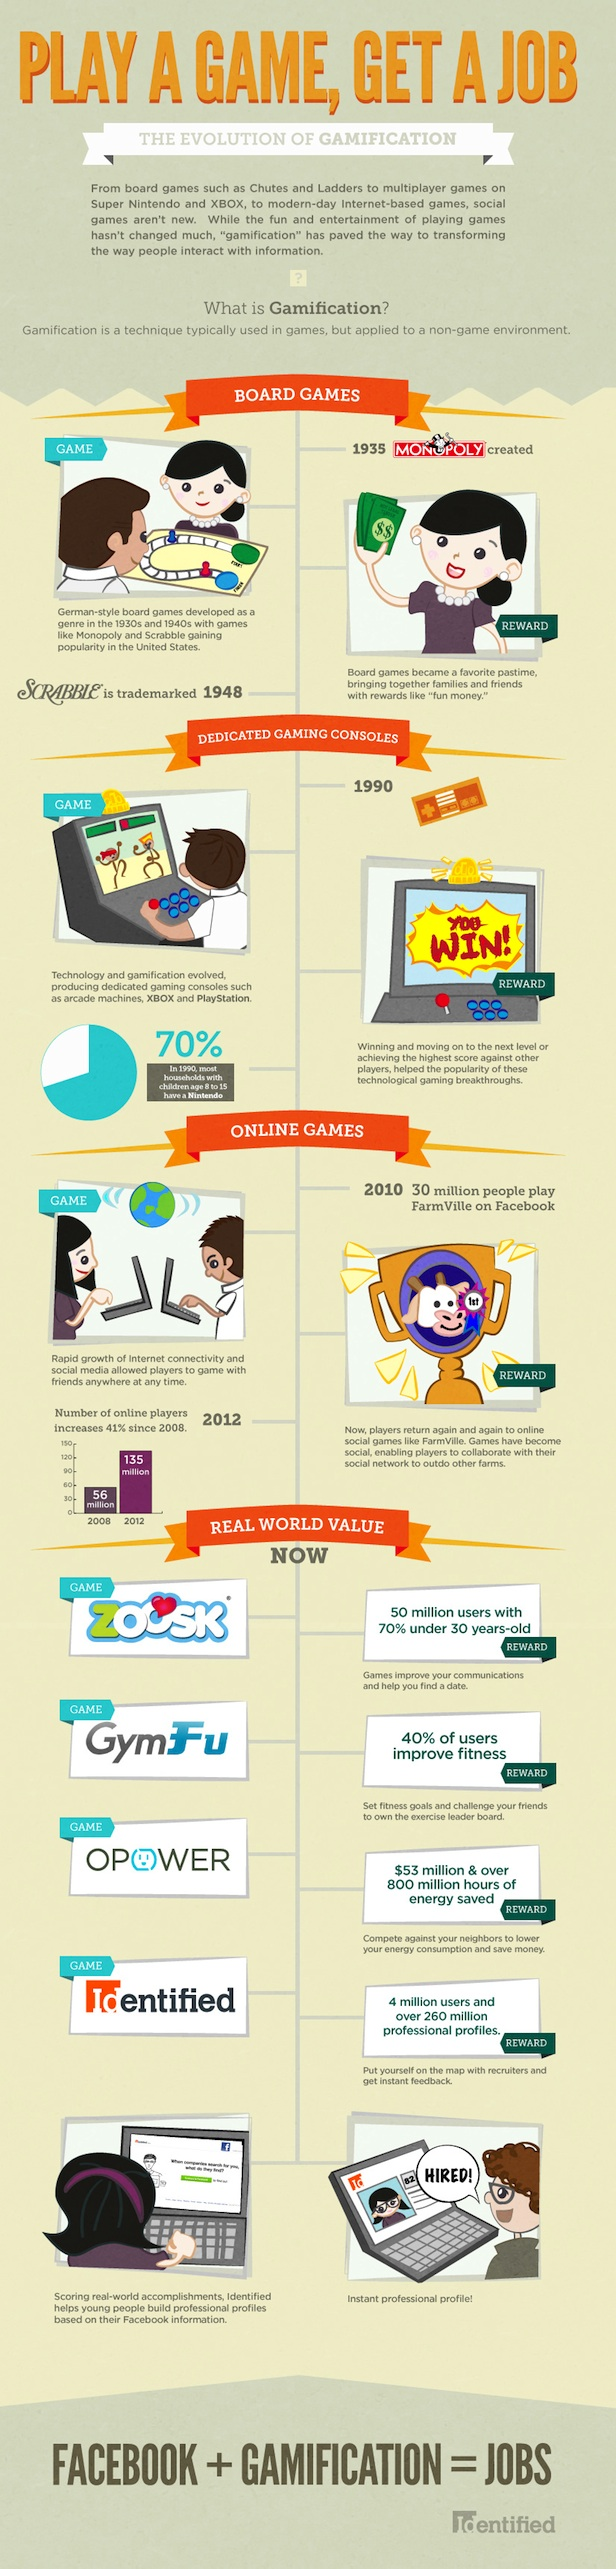 evolution of gamification